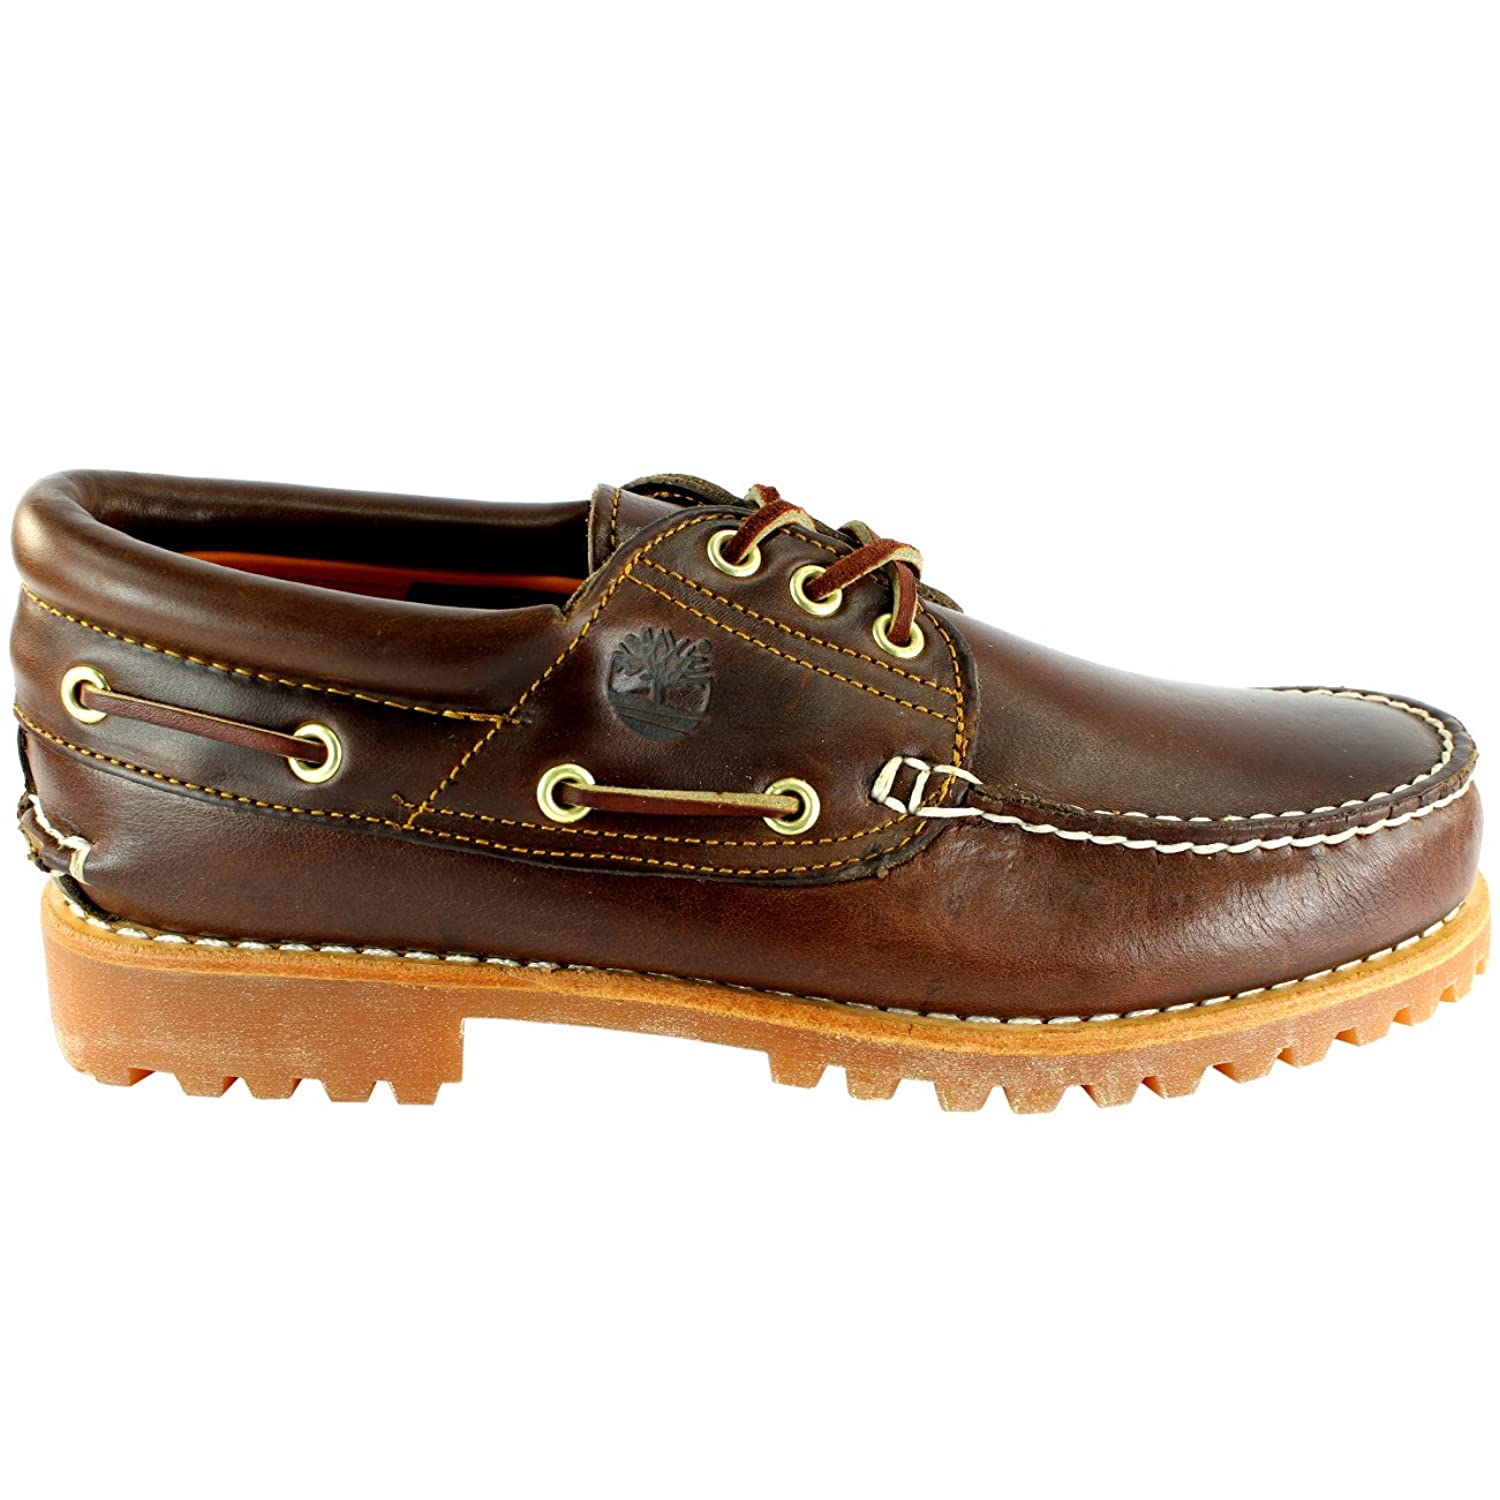 Chaussures Bateau Timberland Taille 7 iAhtsR